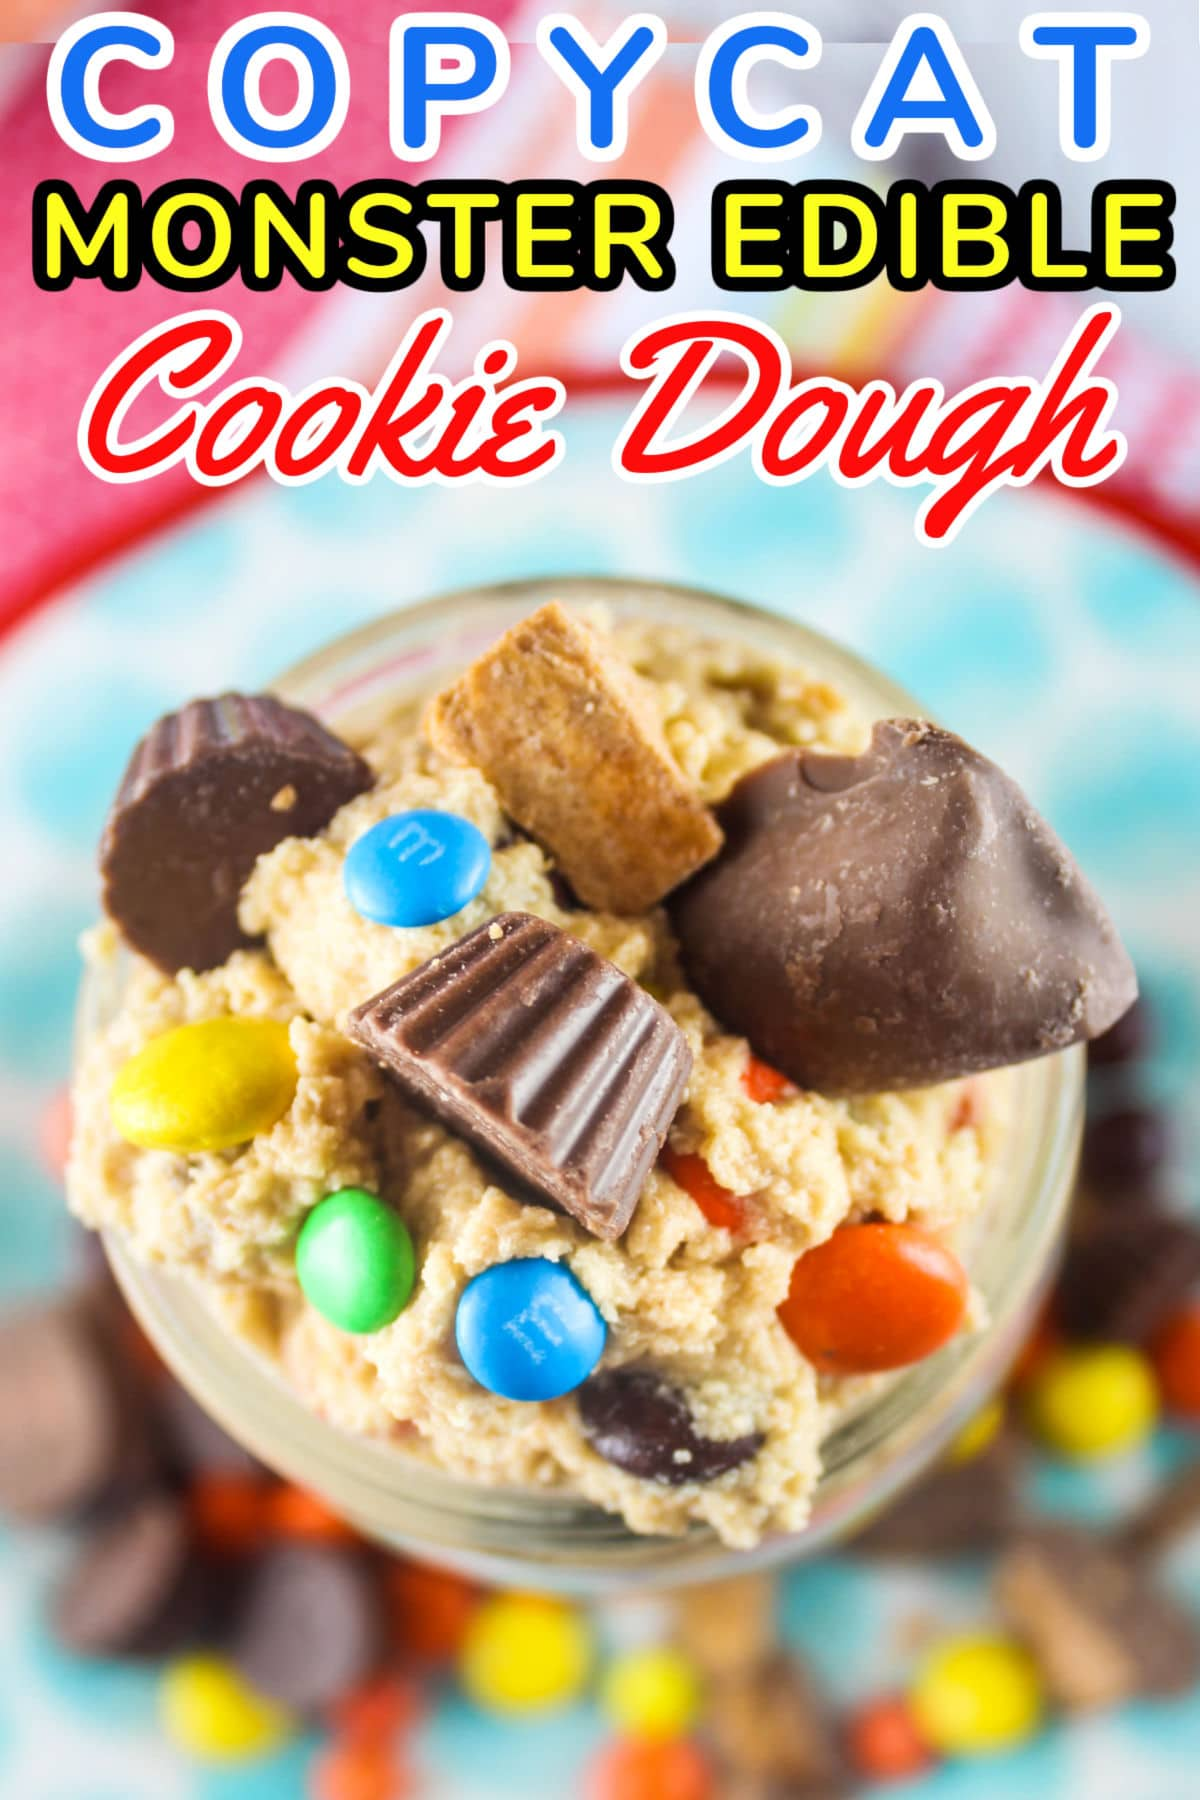 Edible Peanut Butter Monster Cookie Dough from The Yard in Gulf Shores is a must-have when you're visiting - but in the meantime - you can make this version at home!  via @foodhussy